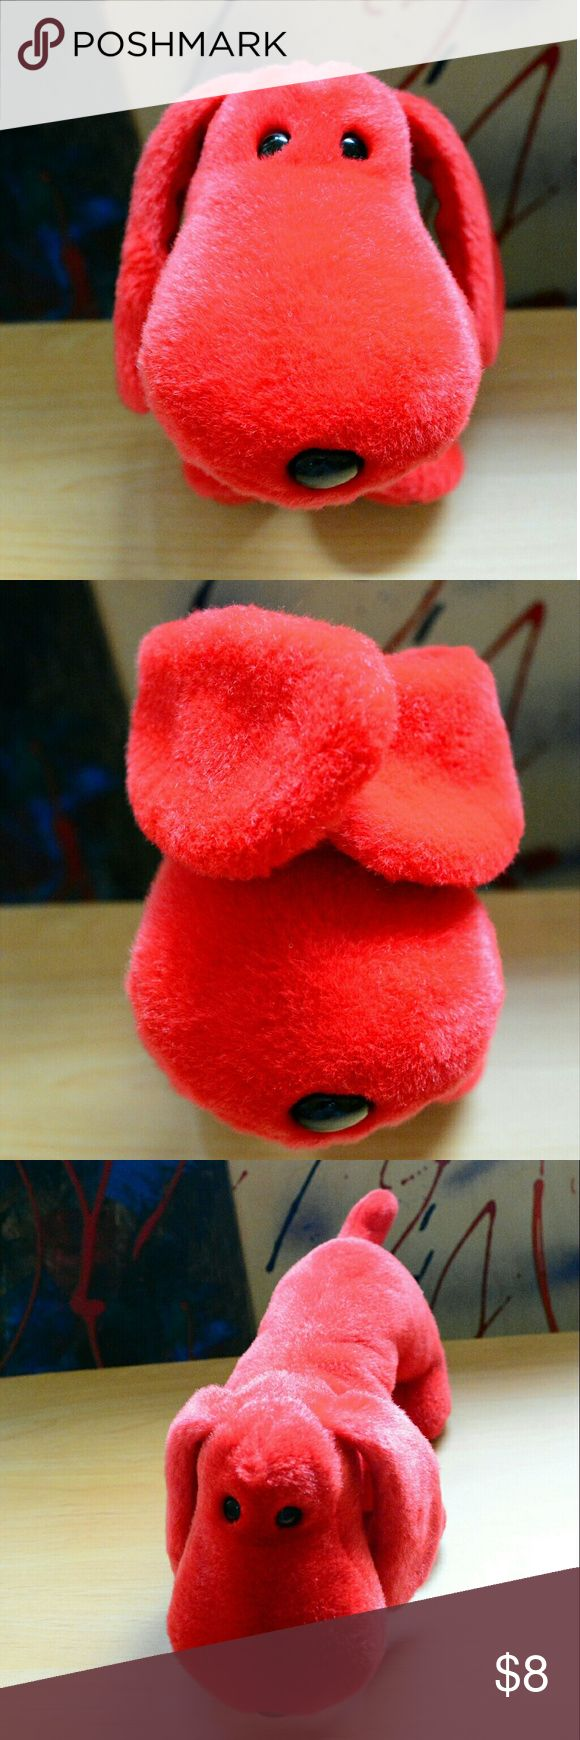 Rover The Red Dog / TY Beanie Buddies Collection Rover The Red Dog / TY Beanie Buddies Collection '98  Length: 14 in  Width: 3.5 in  Height: 5.5 in TY Beanie Buddies Accessories